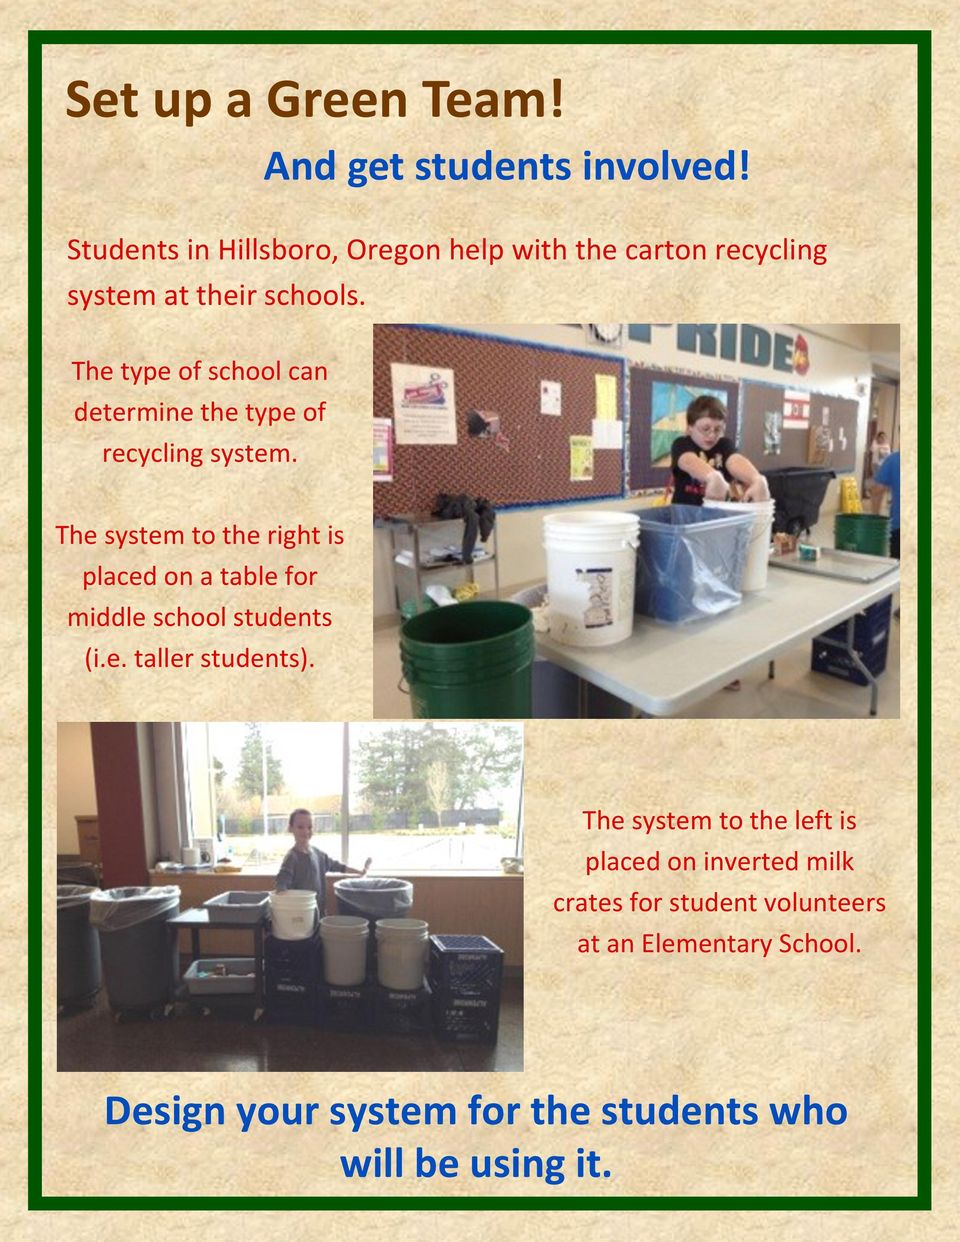 The type of school can determine the type of recycling system.